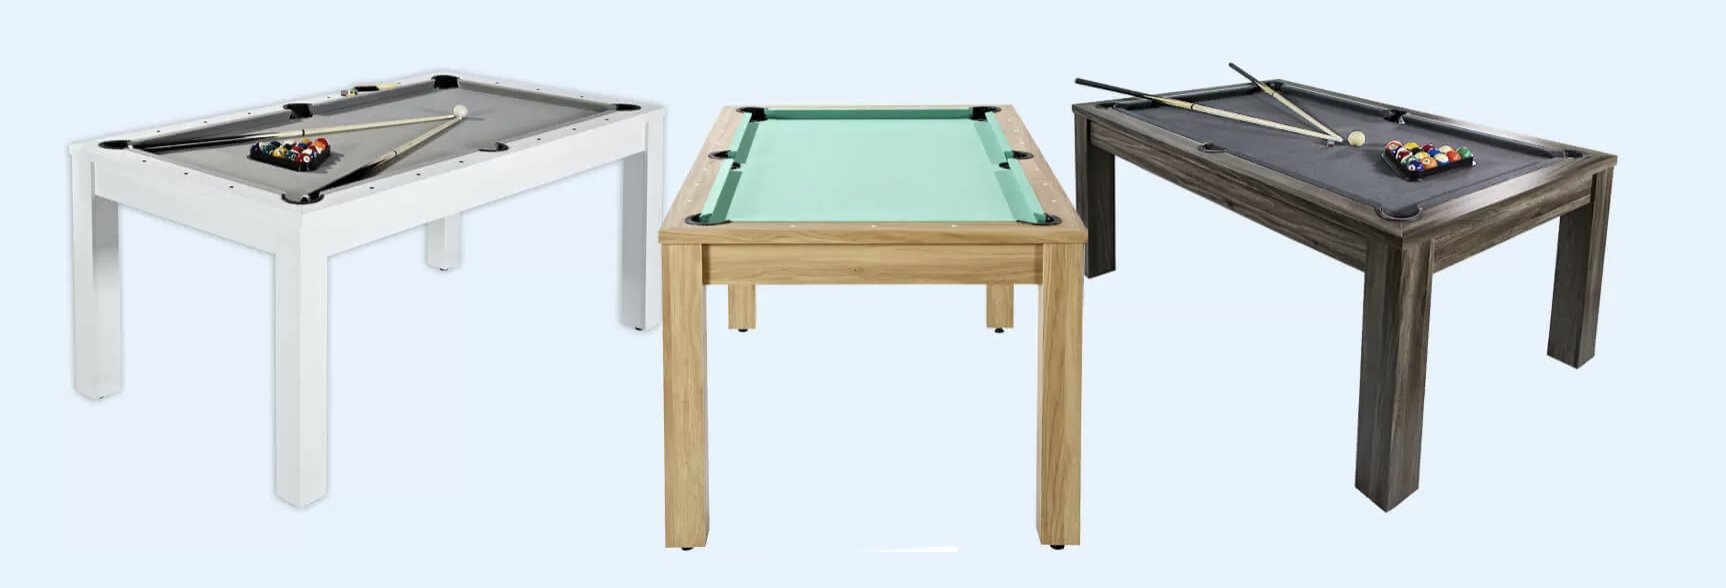 billard table guillaume